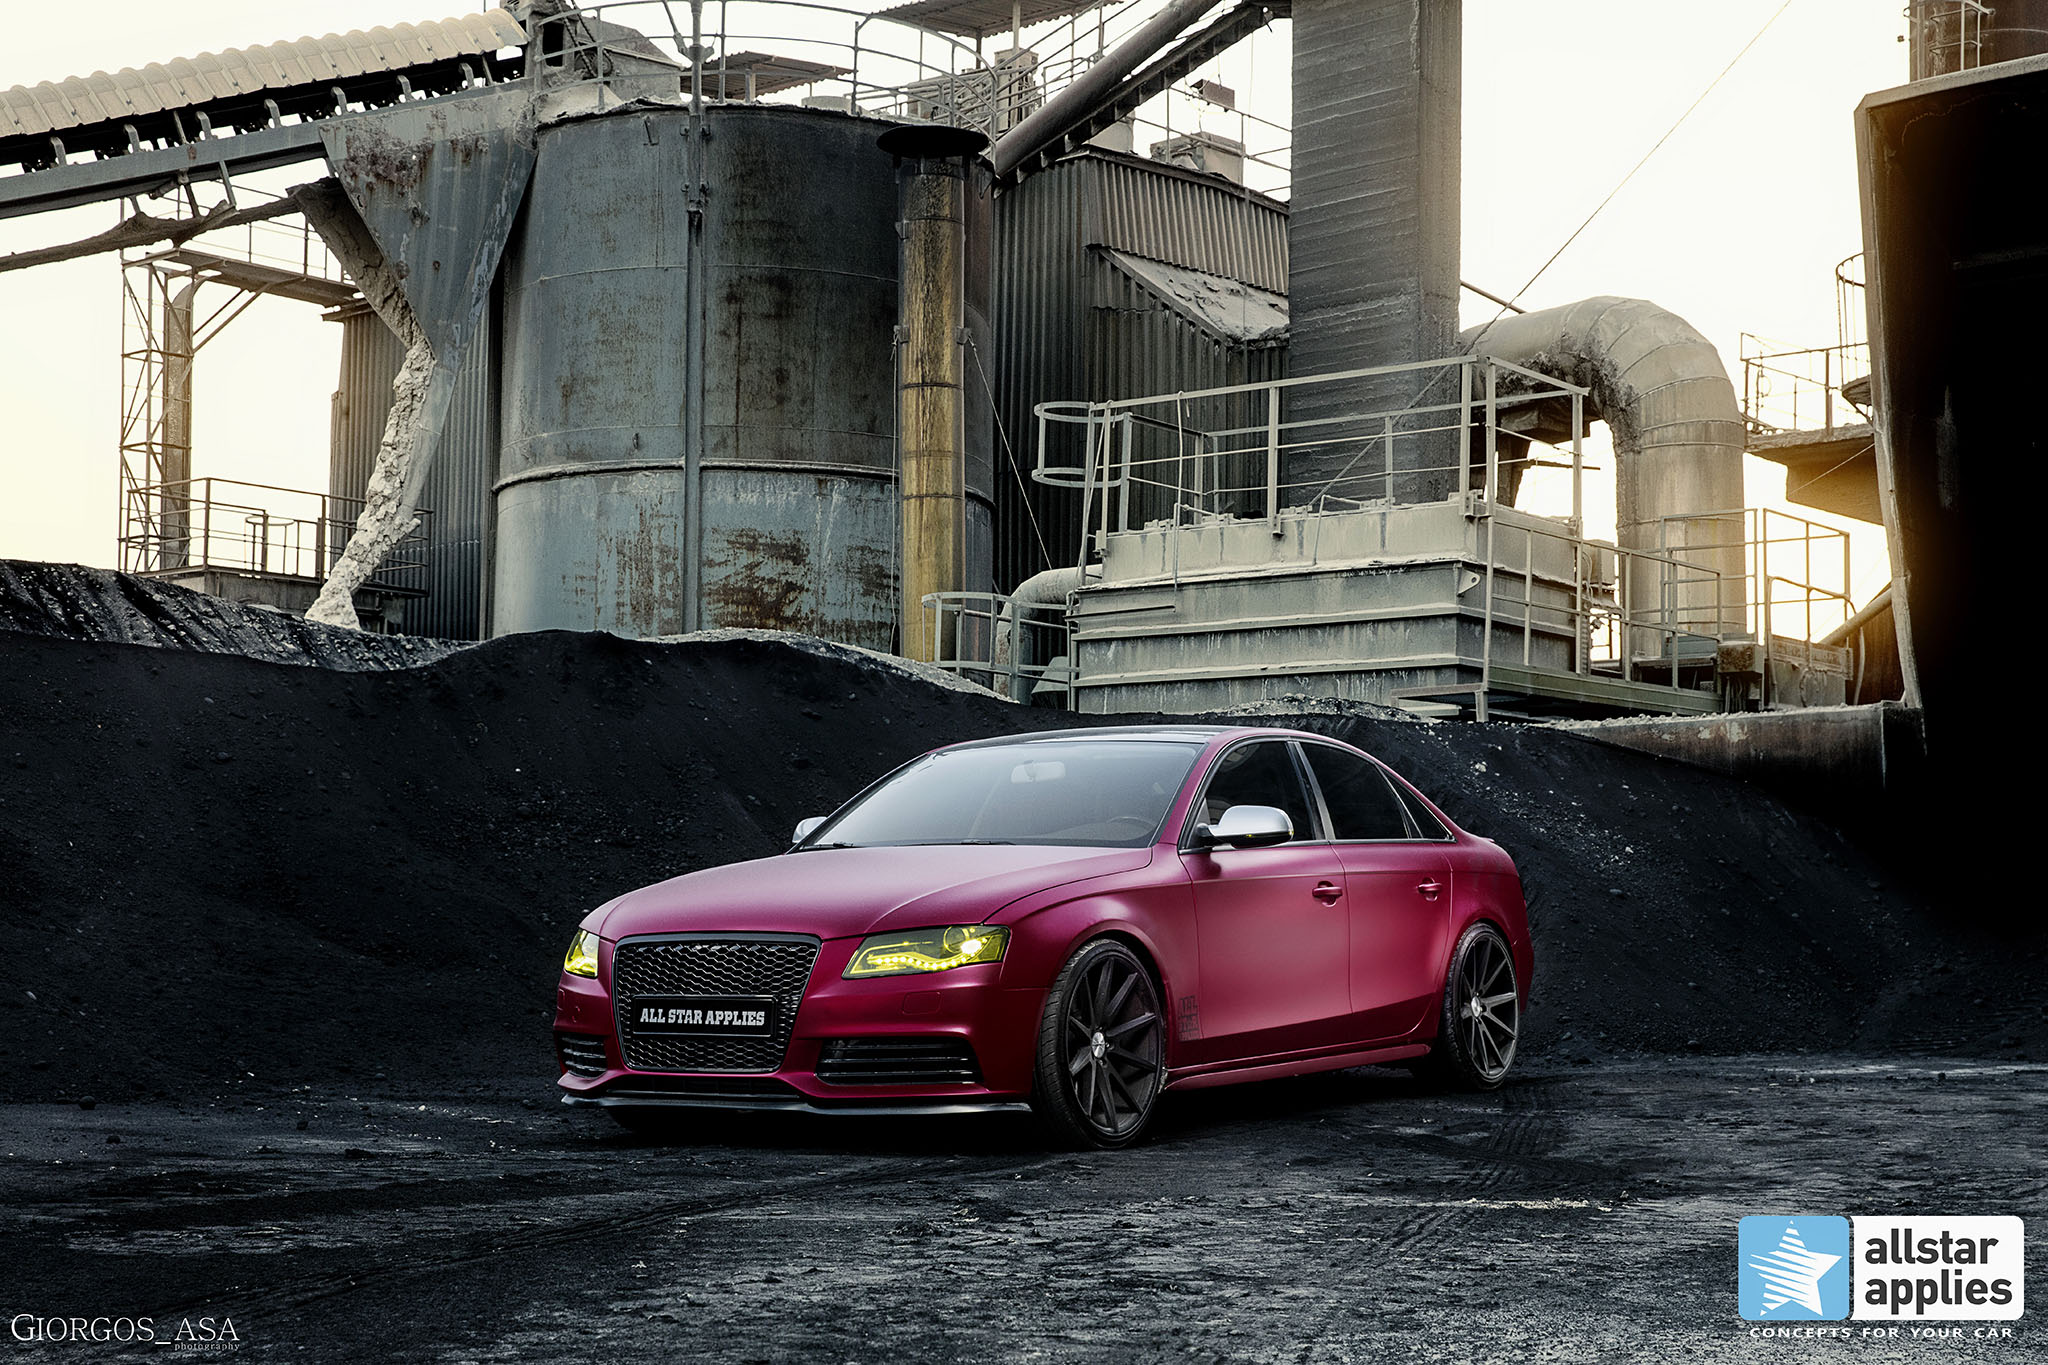 Audi A4 - Cherry Red Chrome (1)